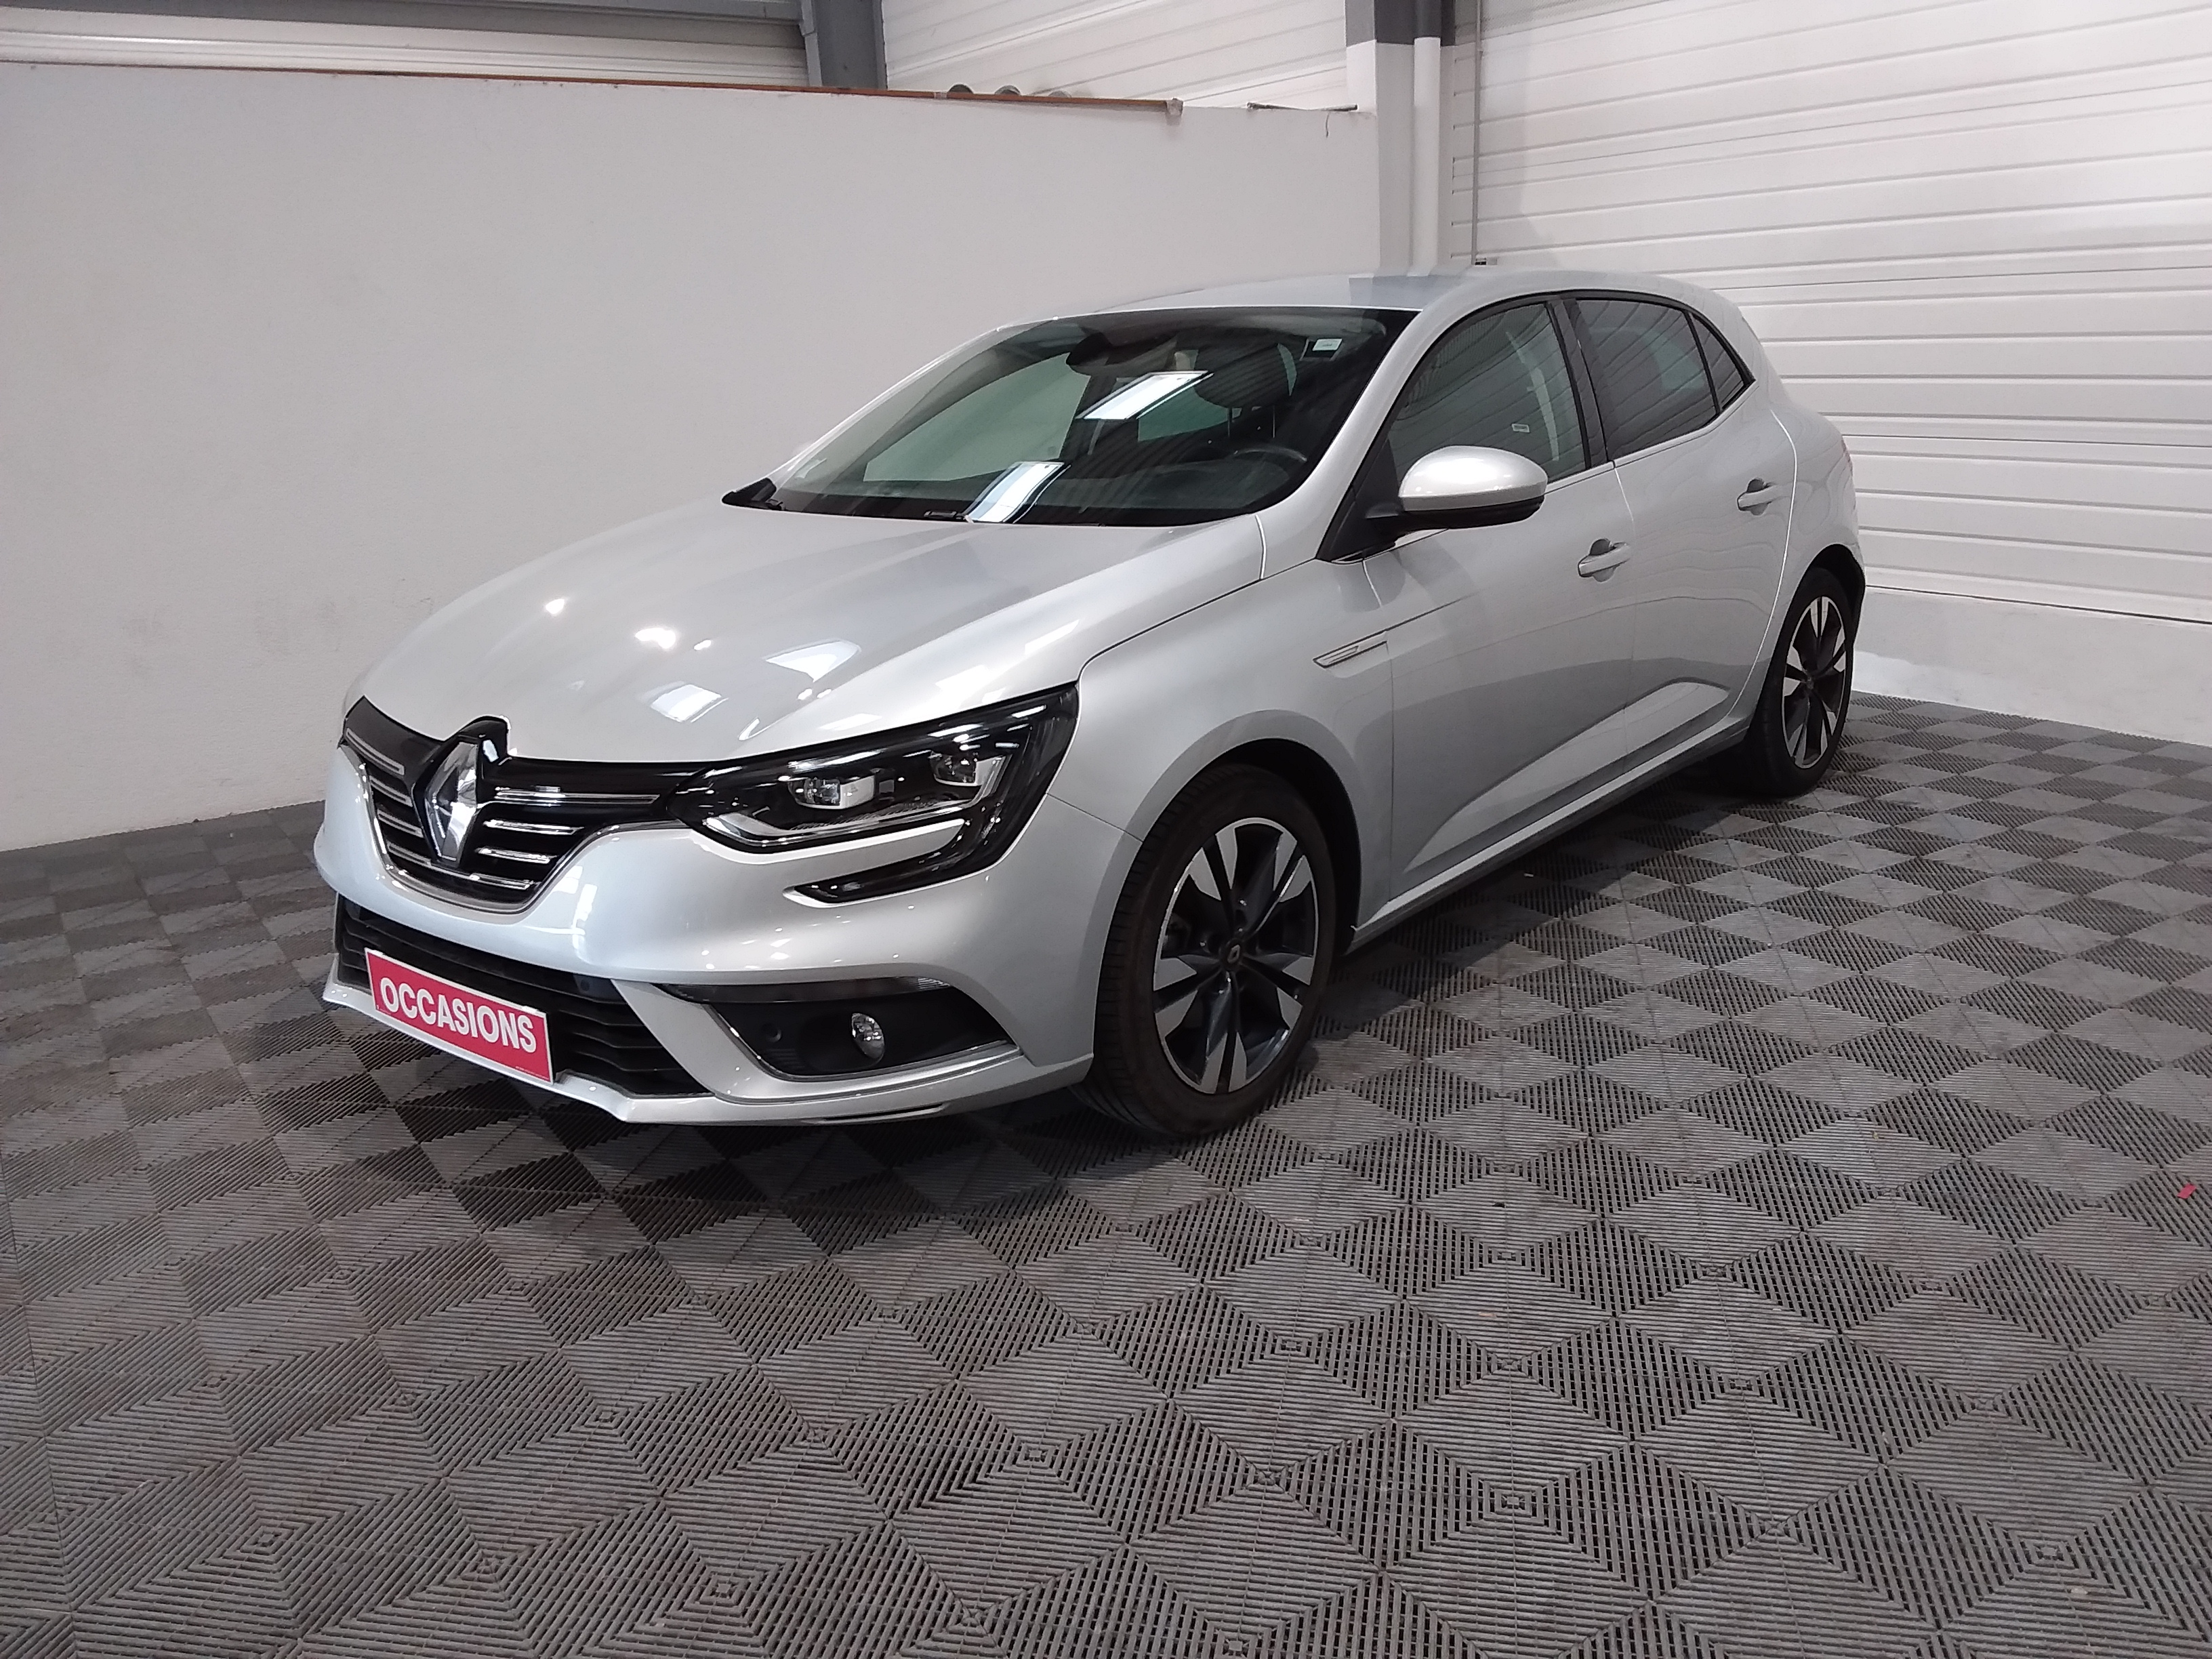 RENAULT MEGANE IV BERLINE BUSINESS Business Intens Energy dci 110 EDC d'occasion